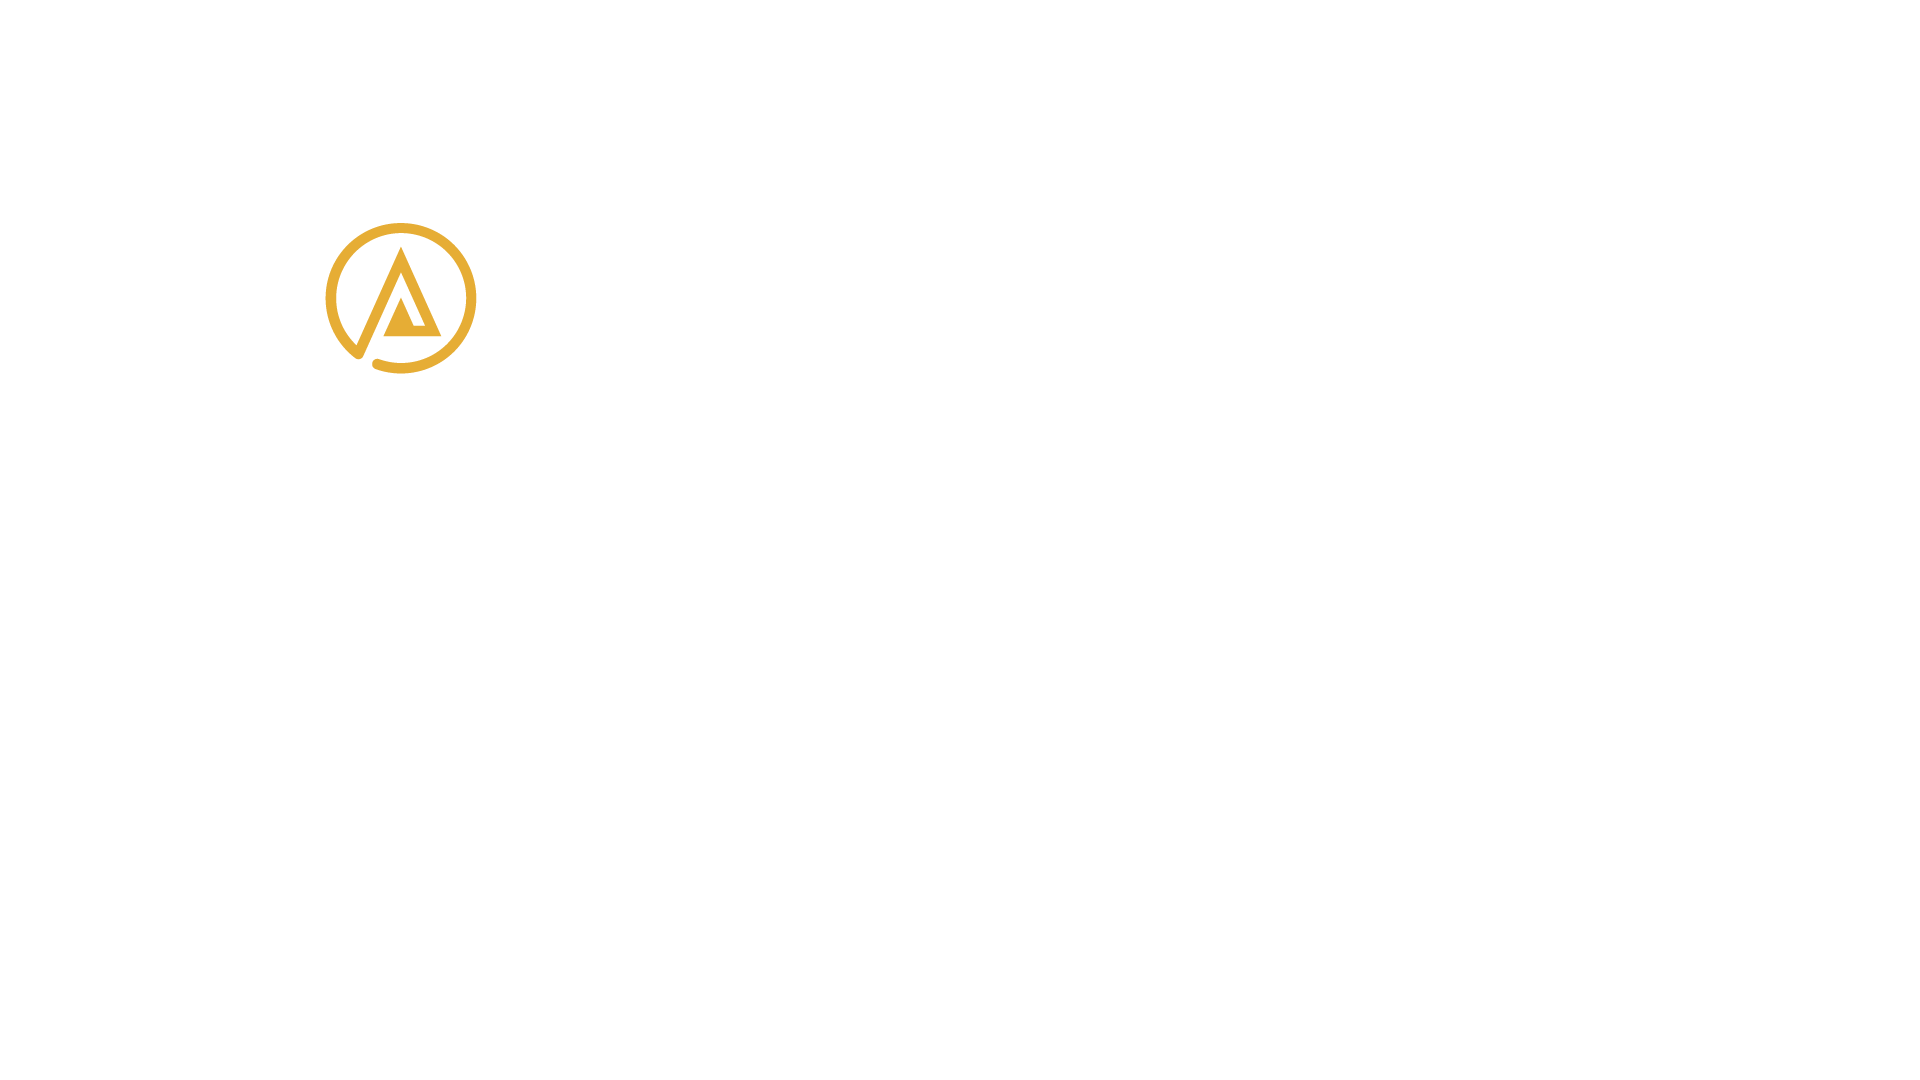 CIO SUMMIT 2019 KOREA